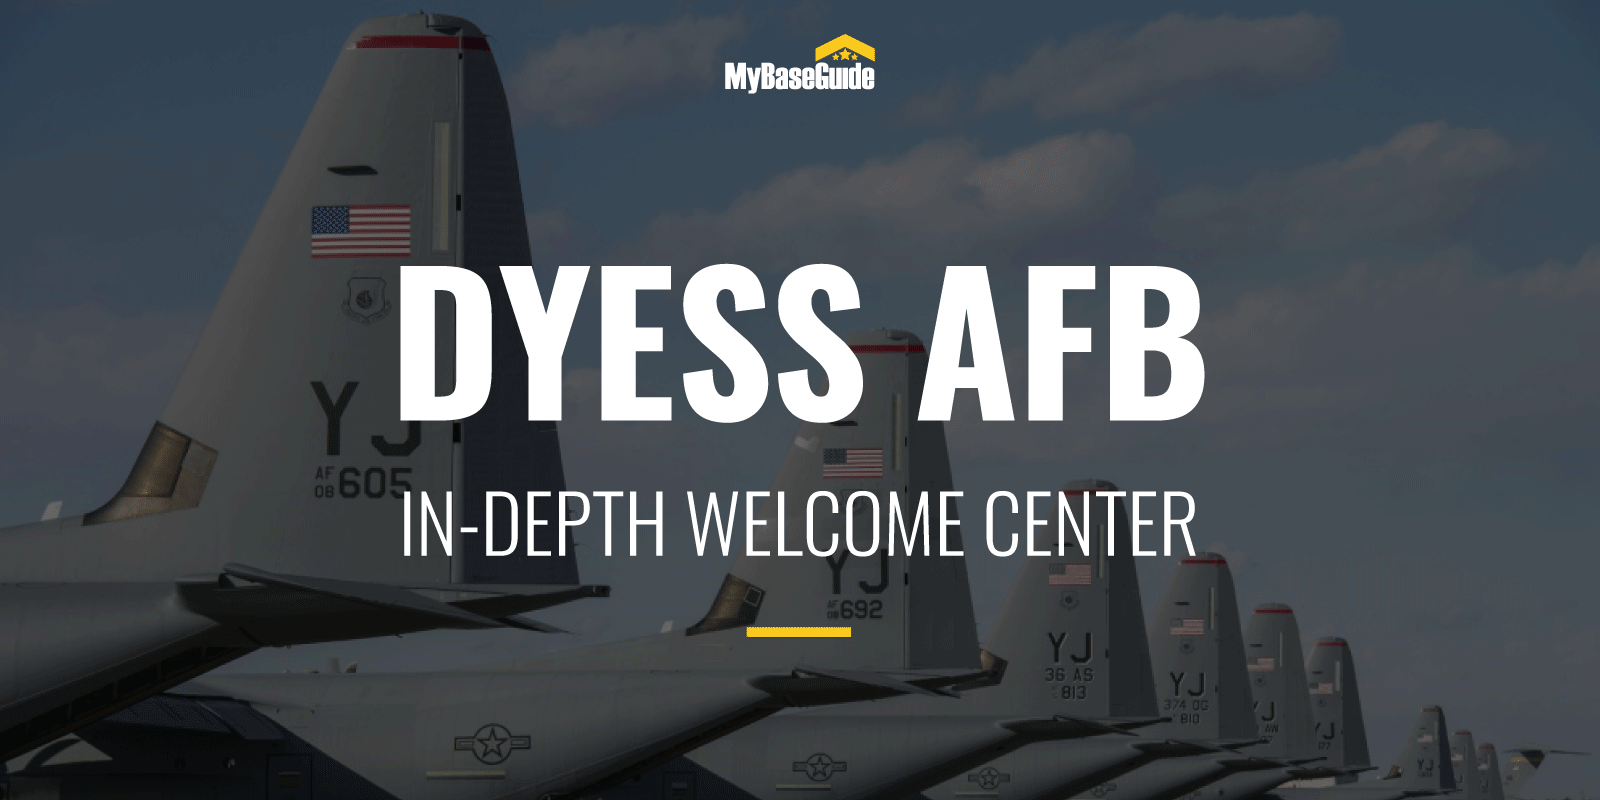 Dyess Air Force Base: In-Depth Welcome Center